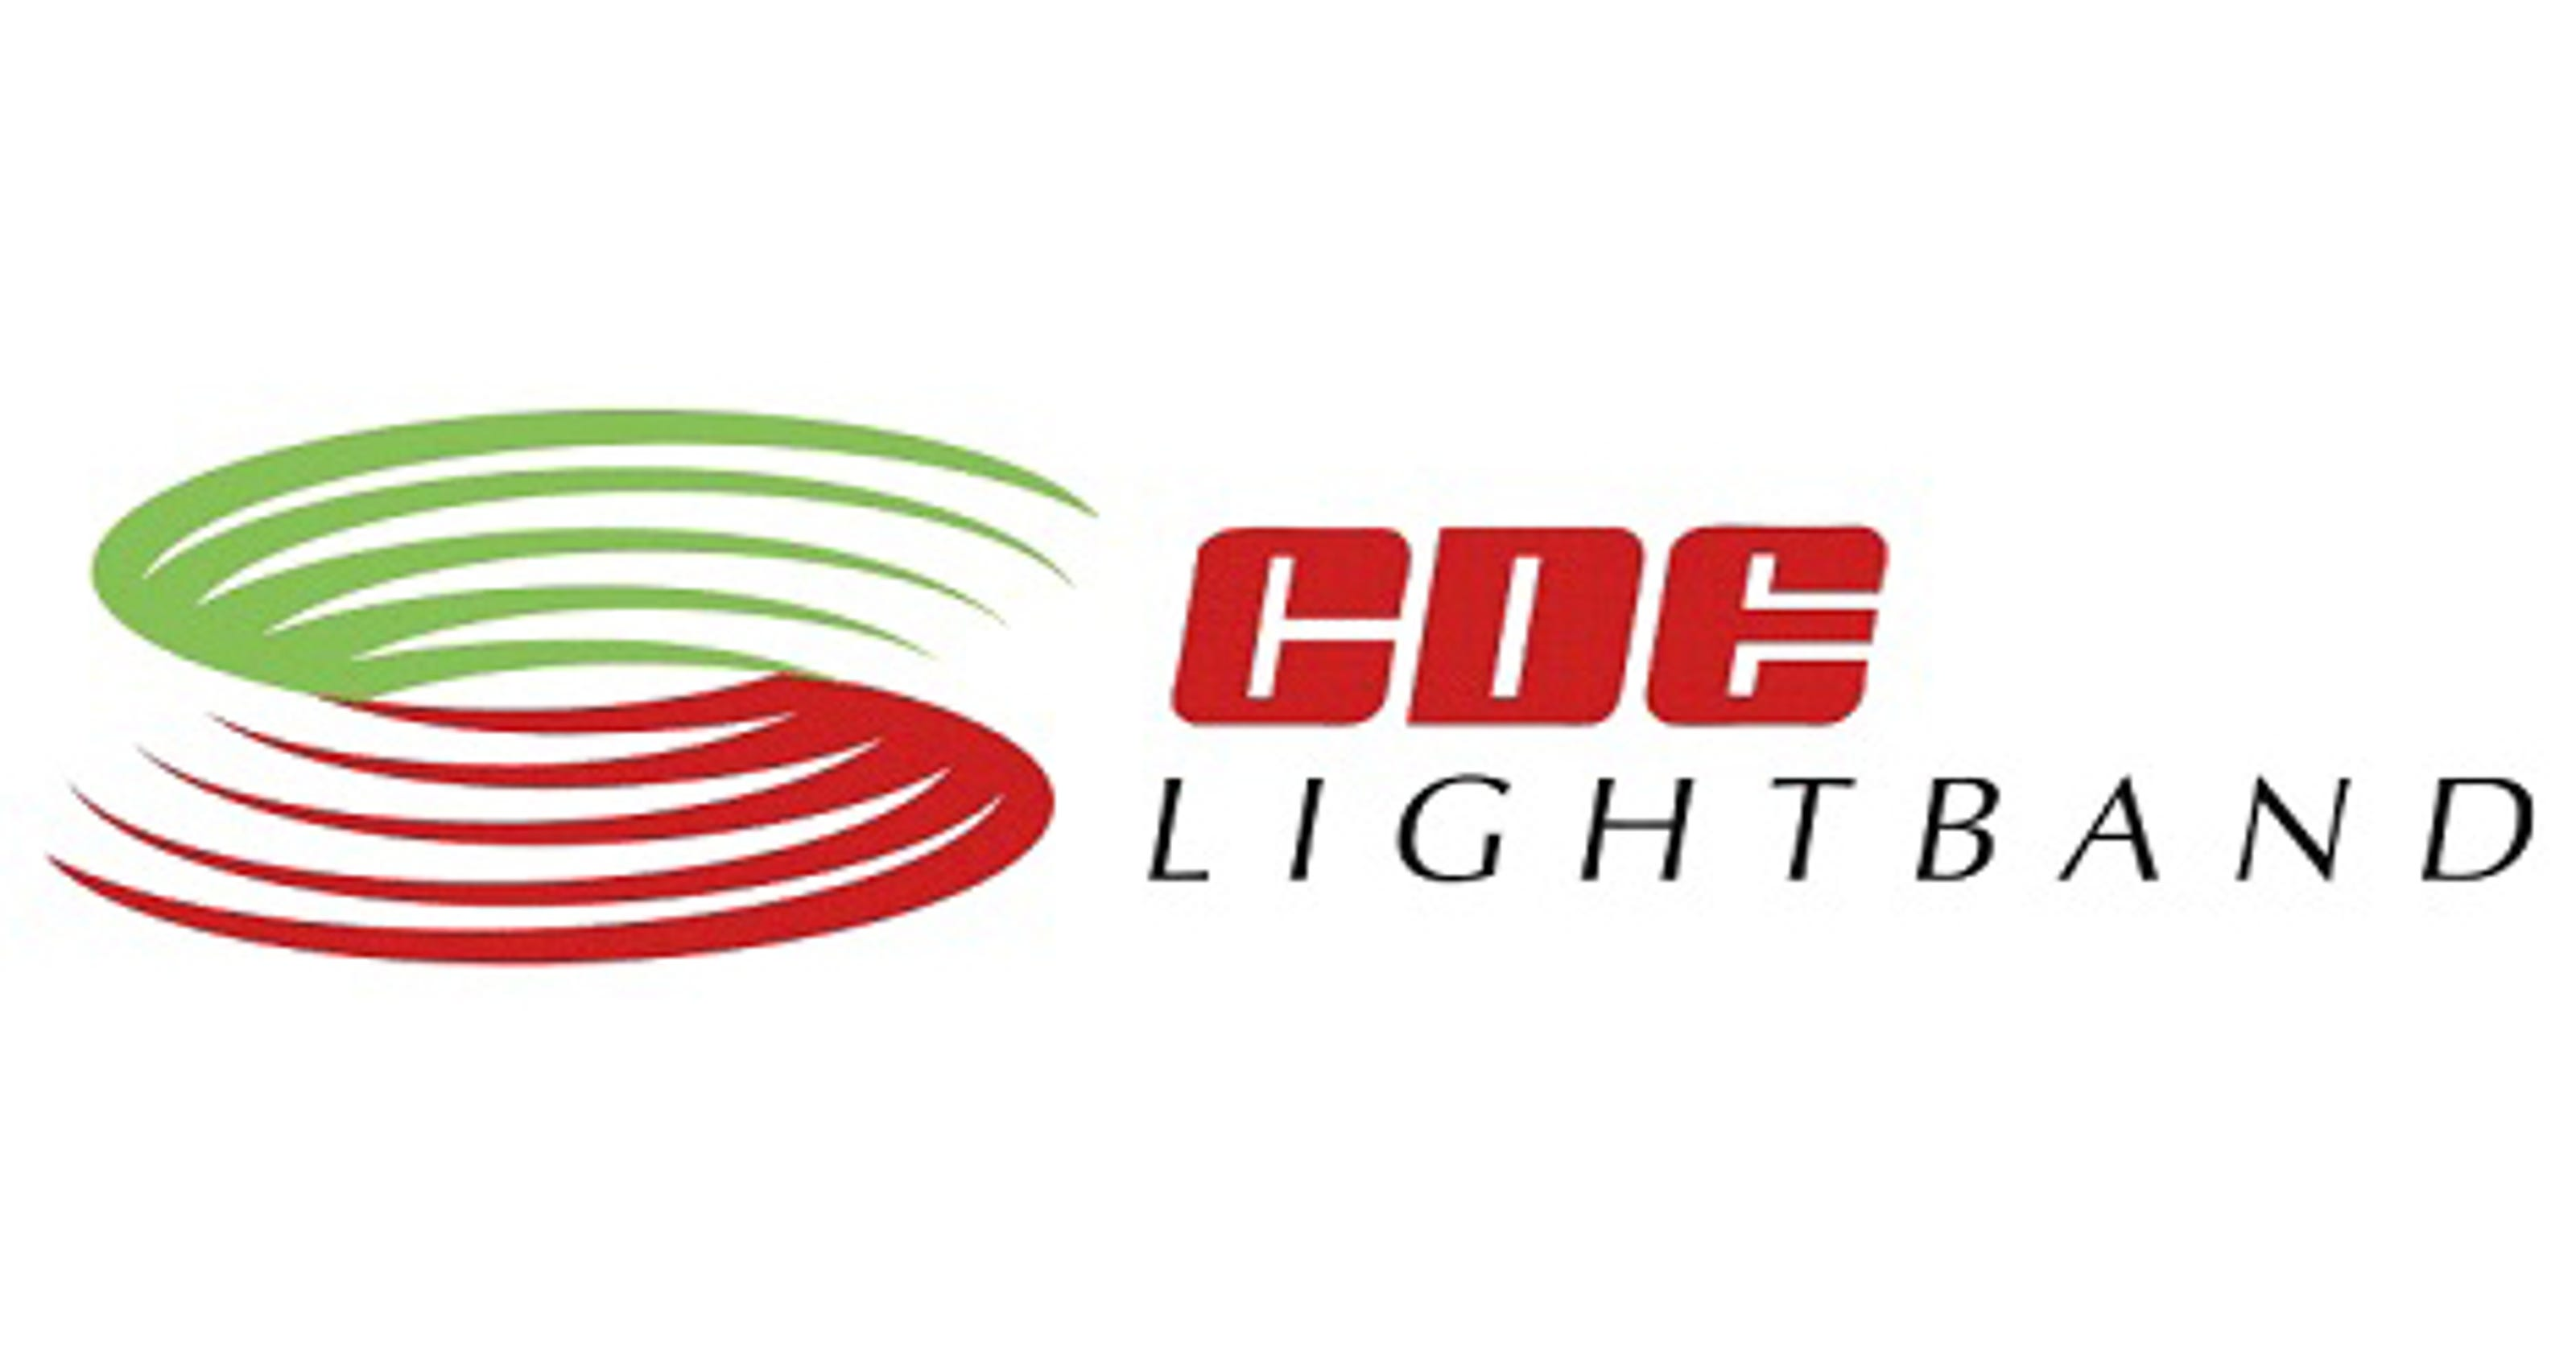 CDE Lightband to open new drive-thru and payment kiosk